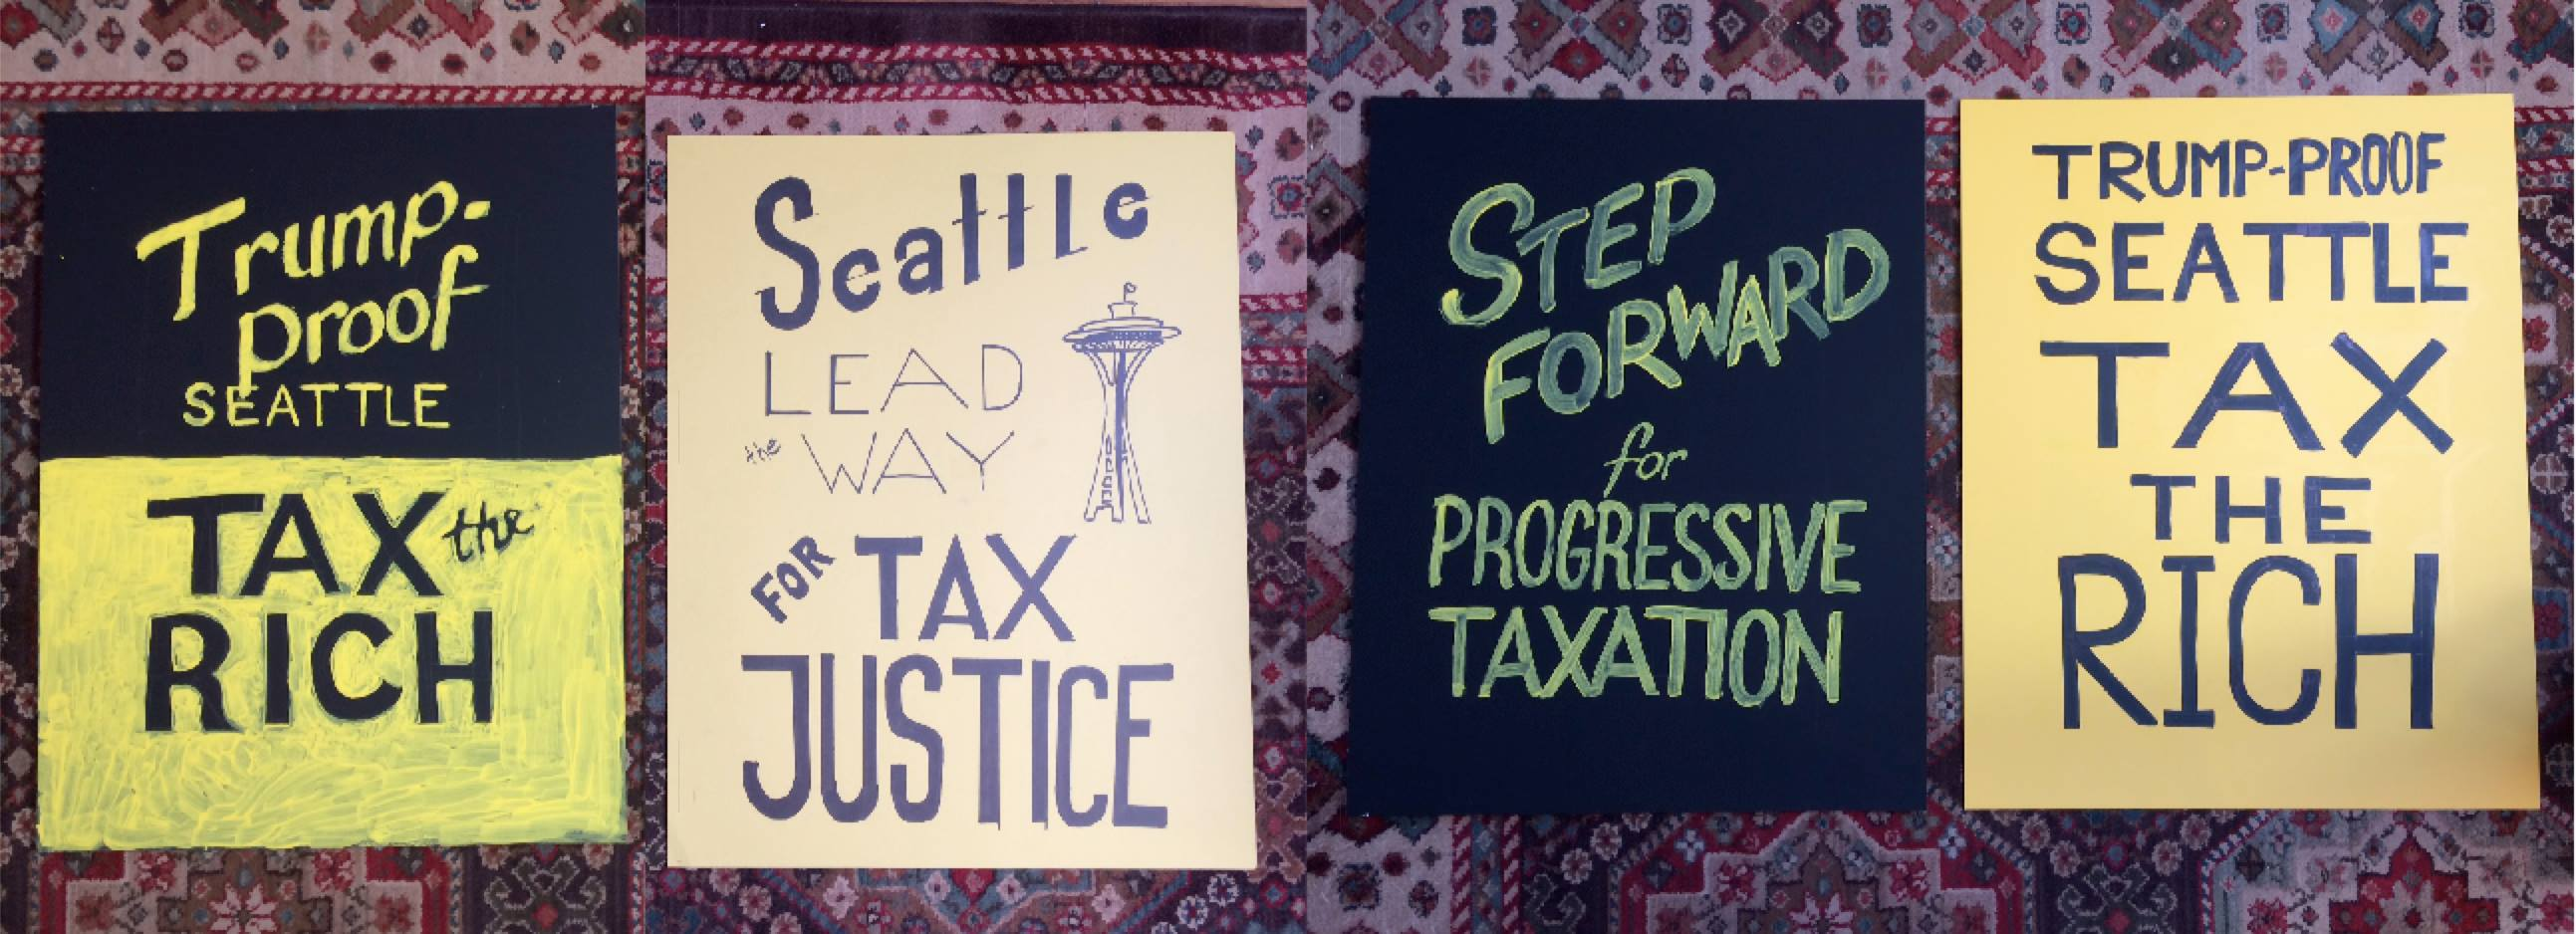 First Court Hearing on Seattle Income Tax @ King County Courthouse | Seattle | Washington | United States